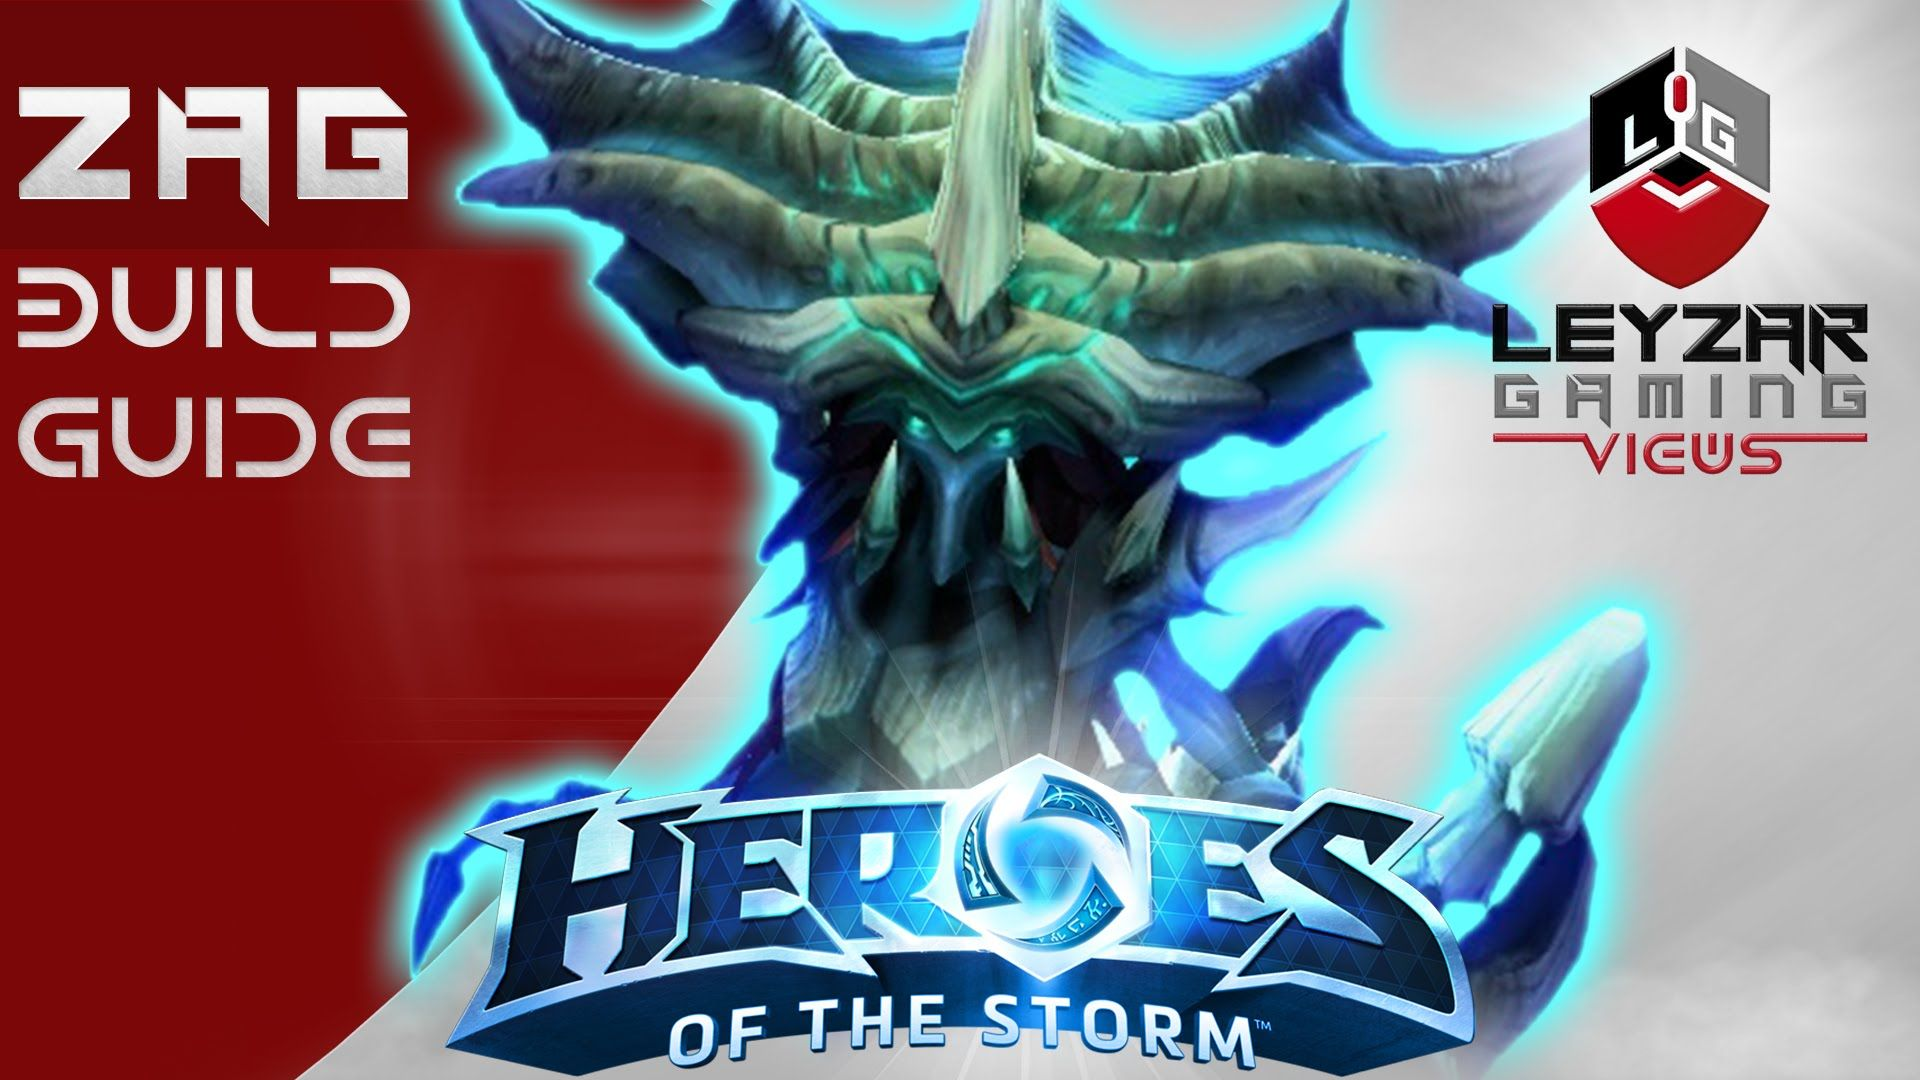 Heroes Of The Storm Gameplay Zagara Build Guide Hots Quick Match Heroes Of The Storm Storm Hero Zagara gameplay build guide in heroes of the storm, this is after the major rework she received in patch 19.0 (gul'dan patch). pinterest